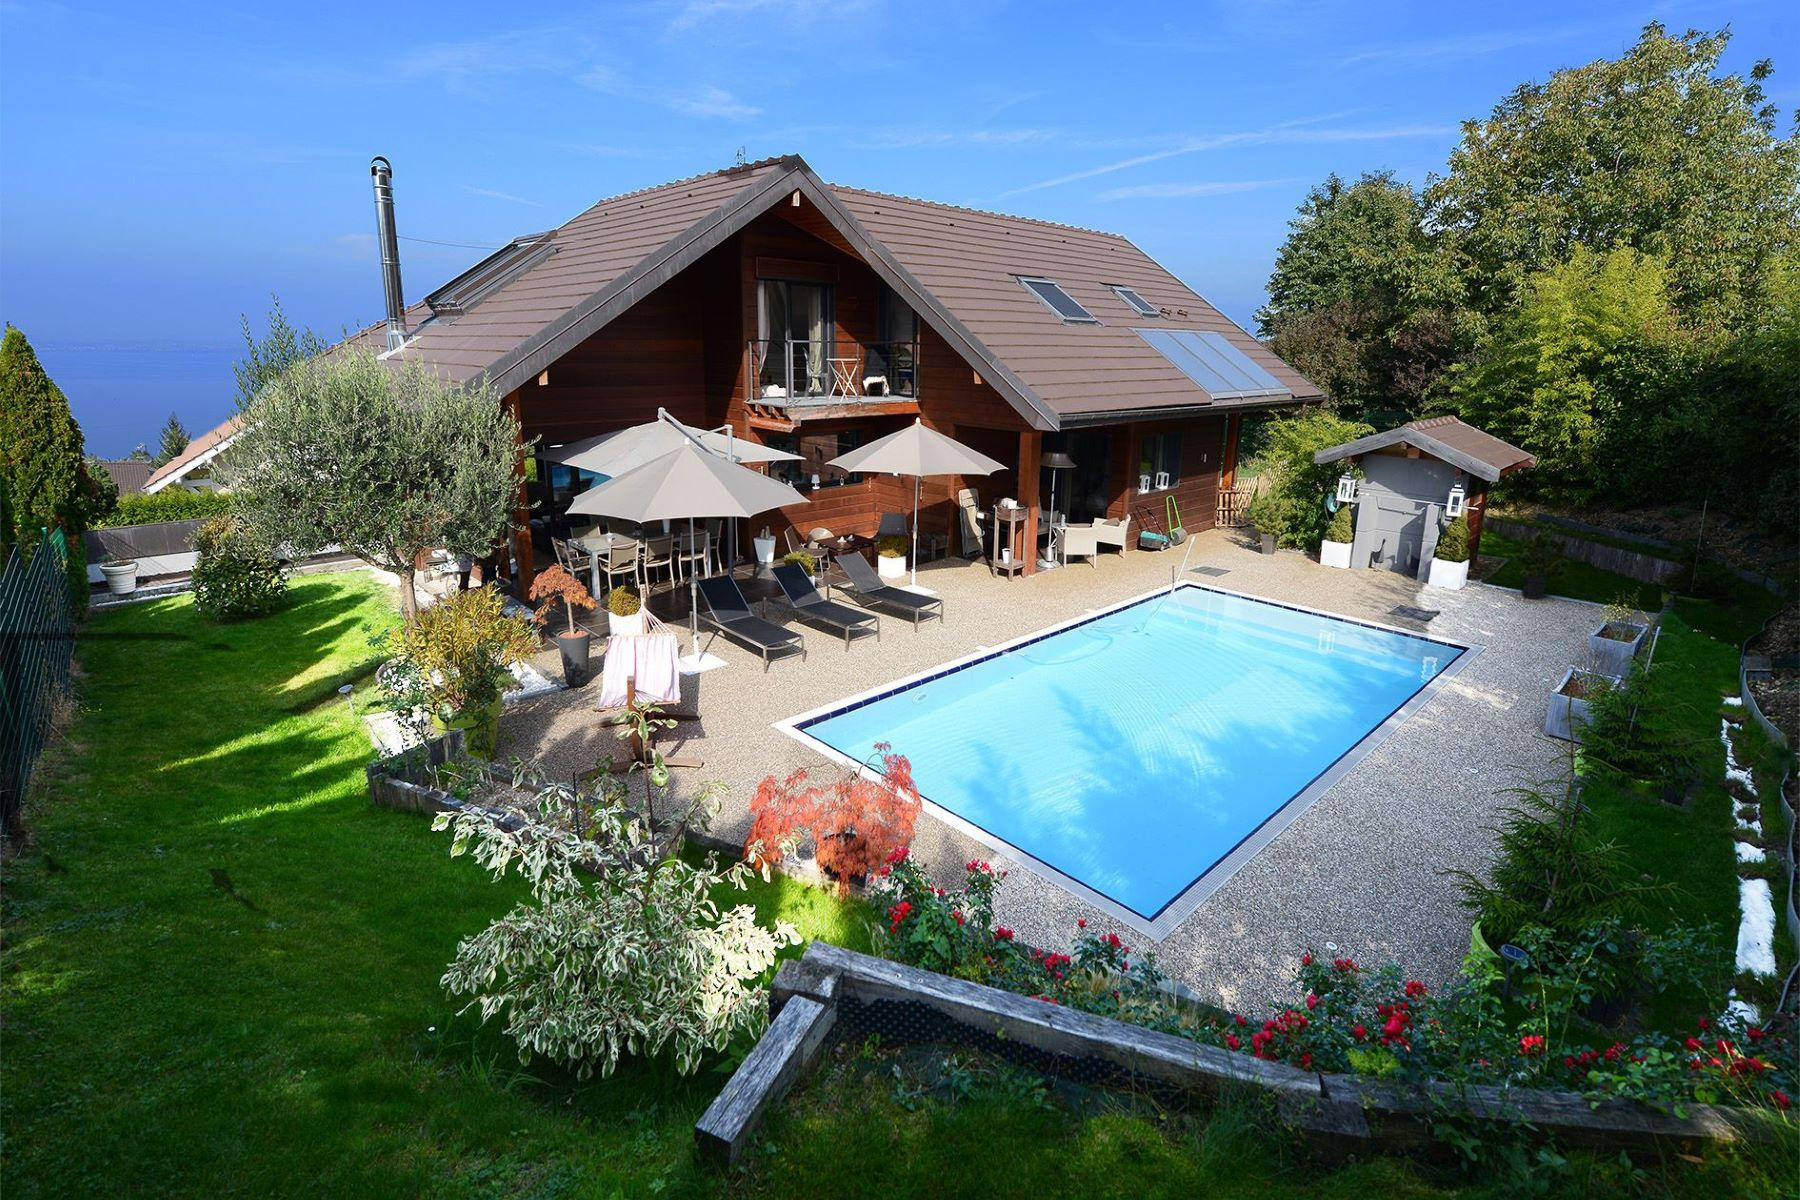 Single Family Home for Sale at EVIAN, Villa Evian Les Bains, Rhone-Alpes, 74500 France